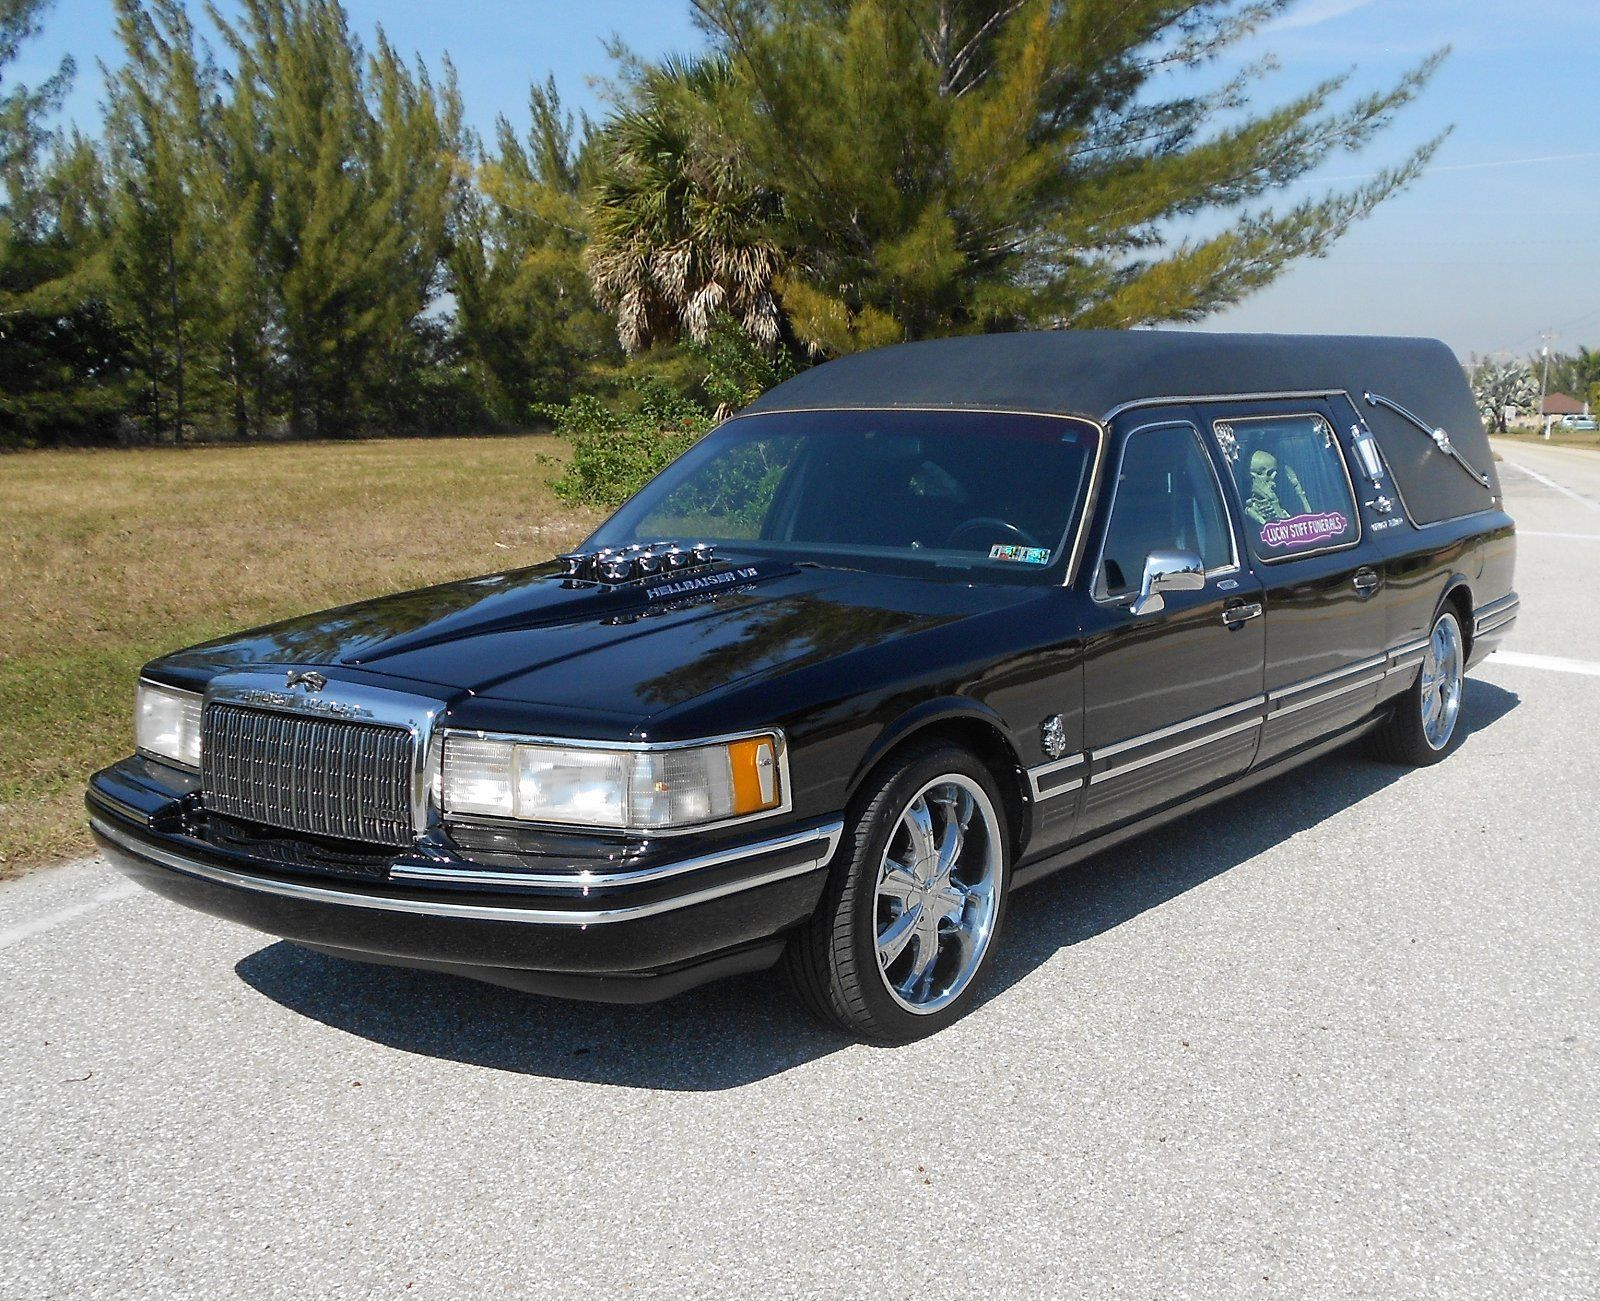 1994 Lincoln Town Car Hot Rod Hearses For Sale Pinterest